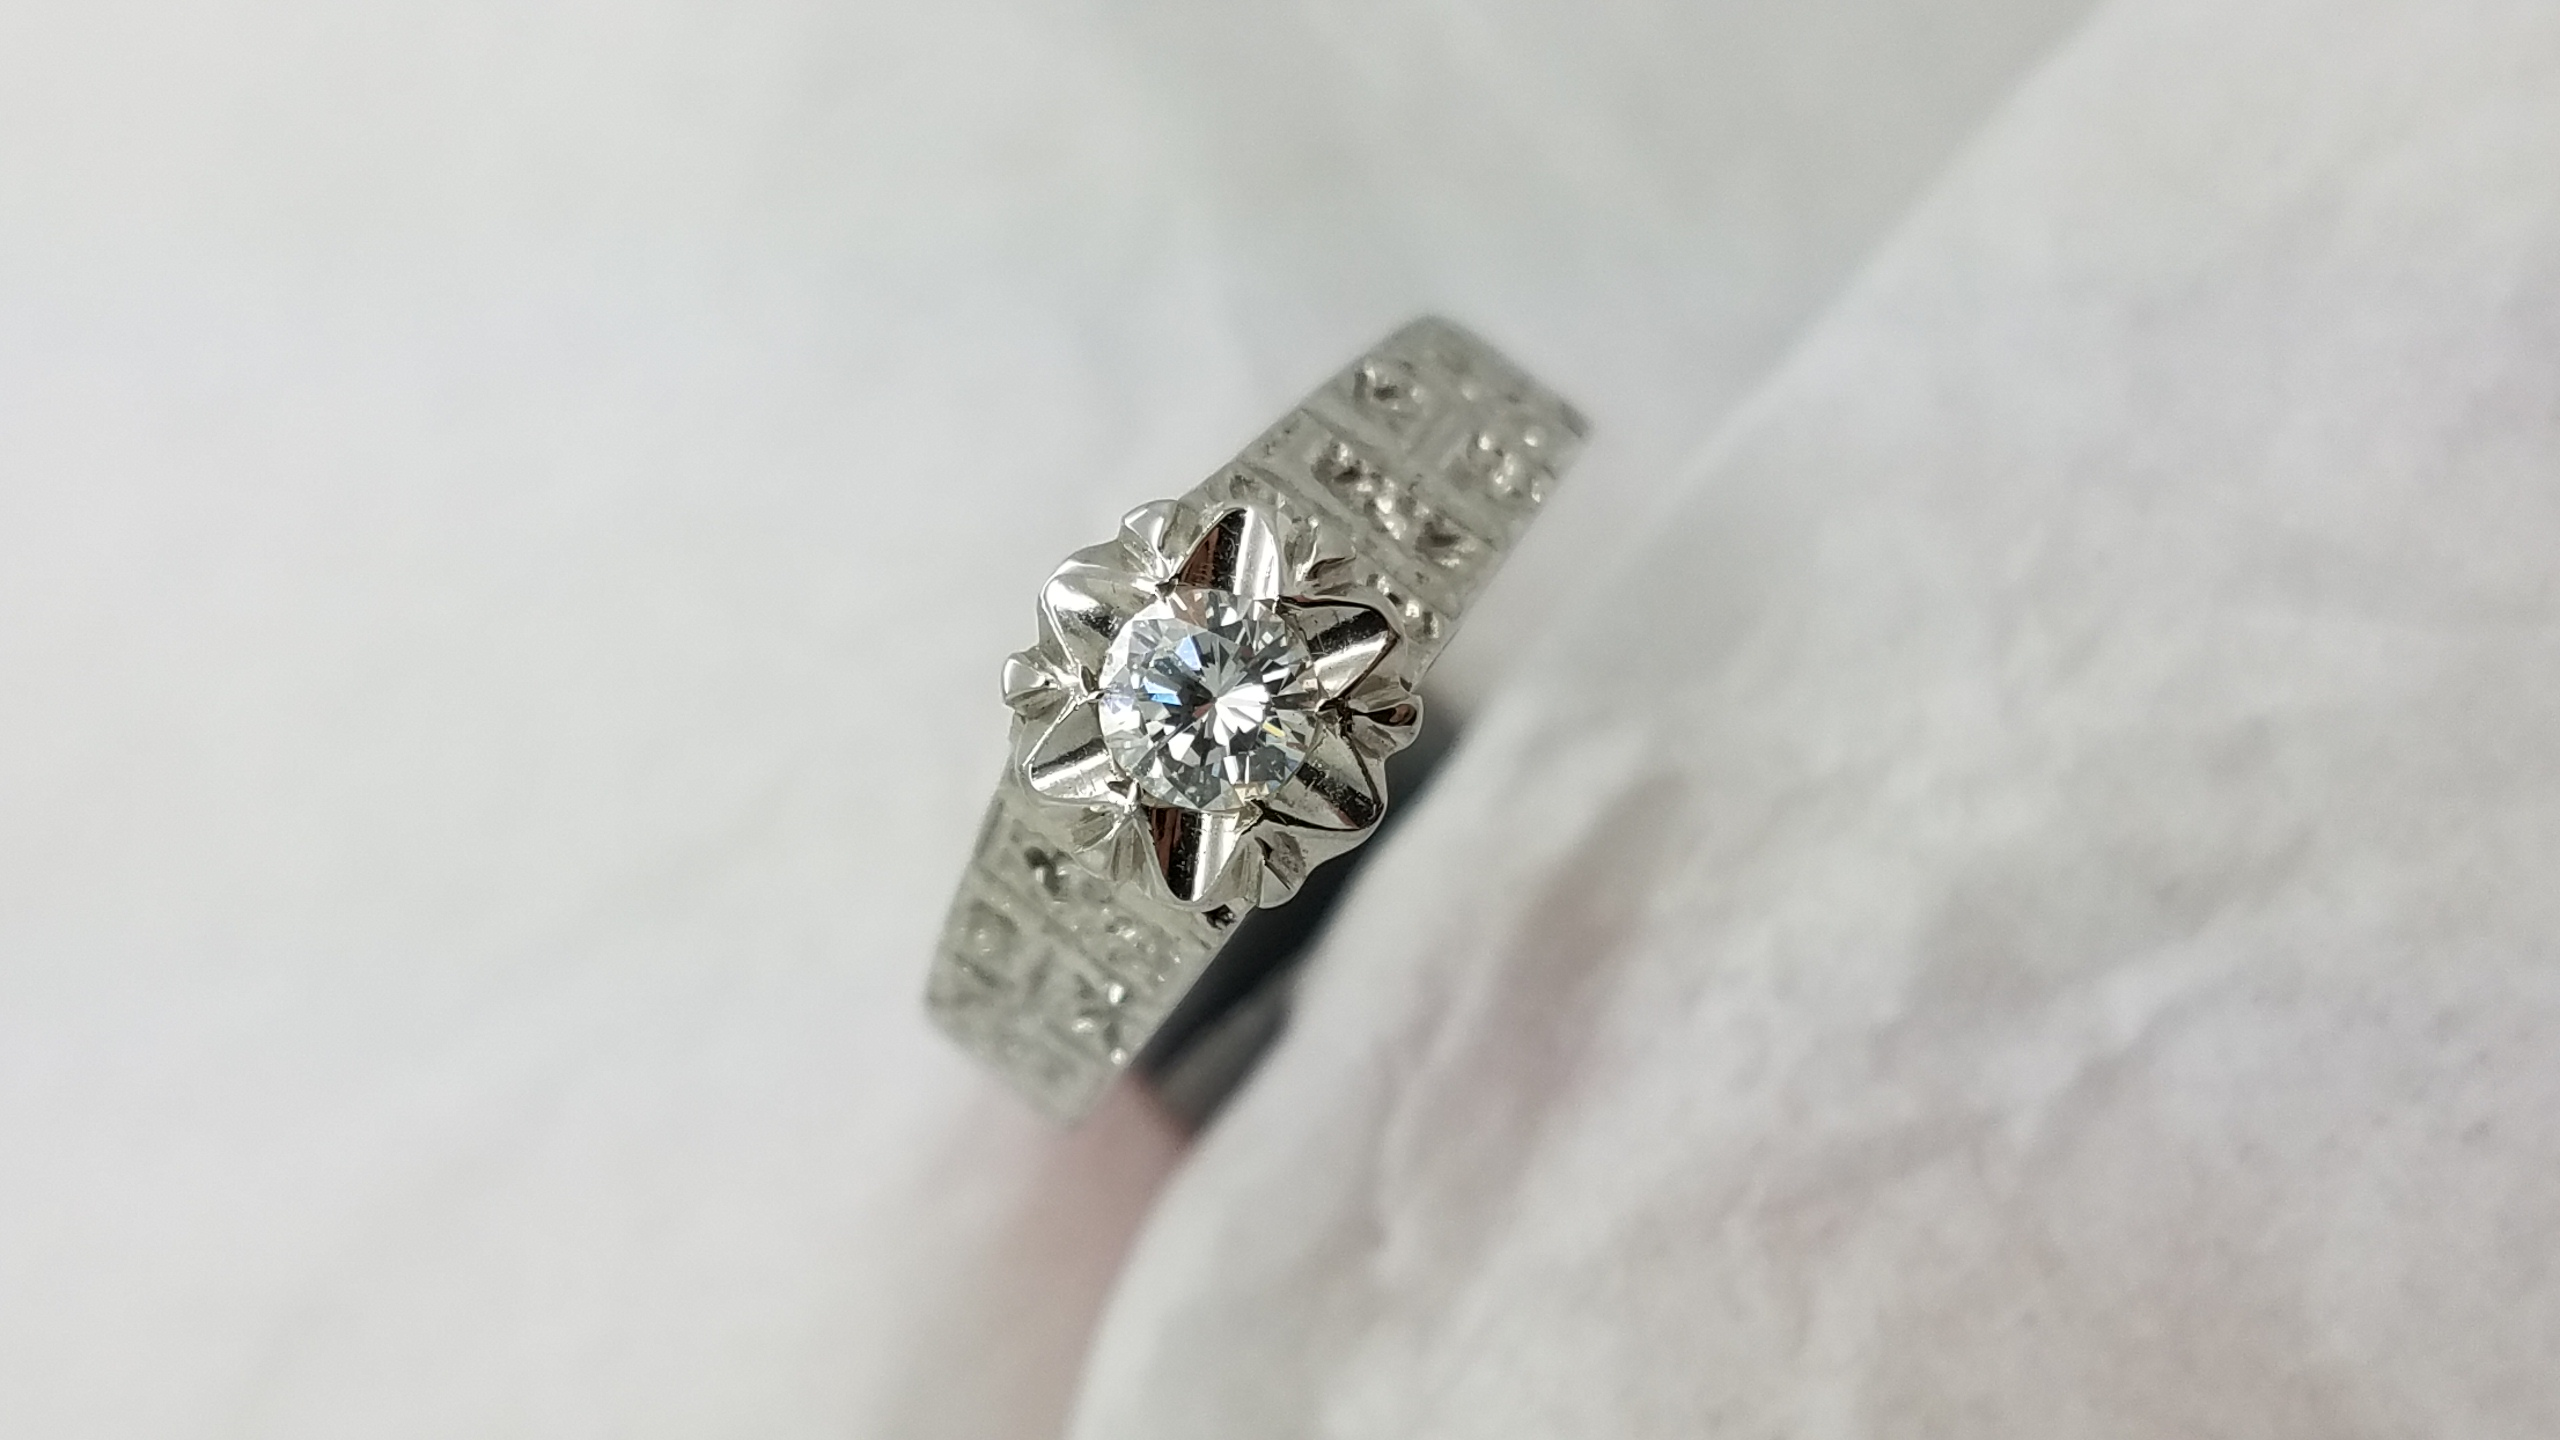 18KWhite GoldVintage style0.20ct.RCutDiamondFlush-SetSolitaire with AccentsEngagement-Ring